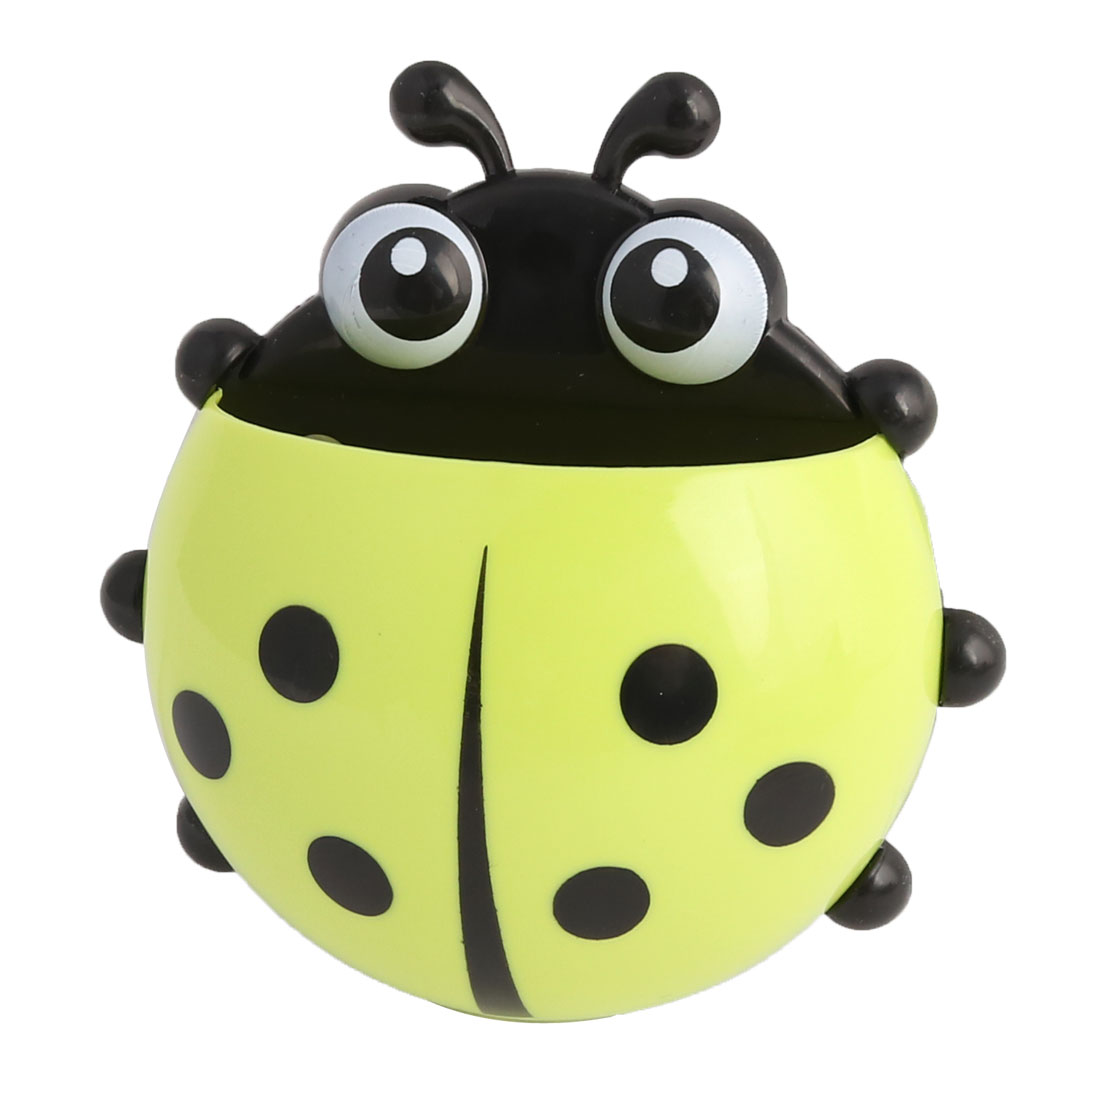 Uxcell Bathroom Plastic Ladybird Pattern Suction Cup Toothbrush Soap Holder Yellowgreen